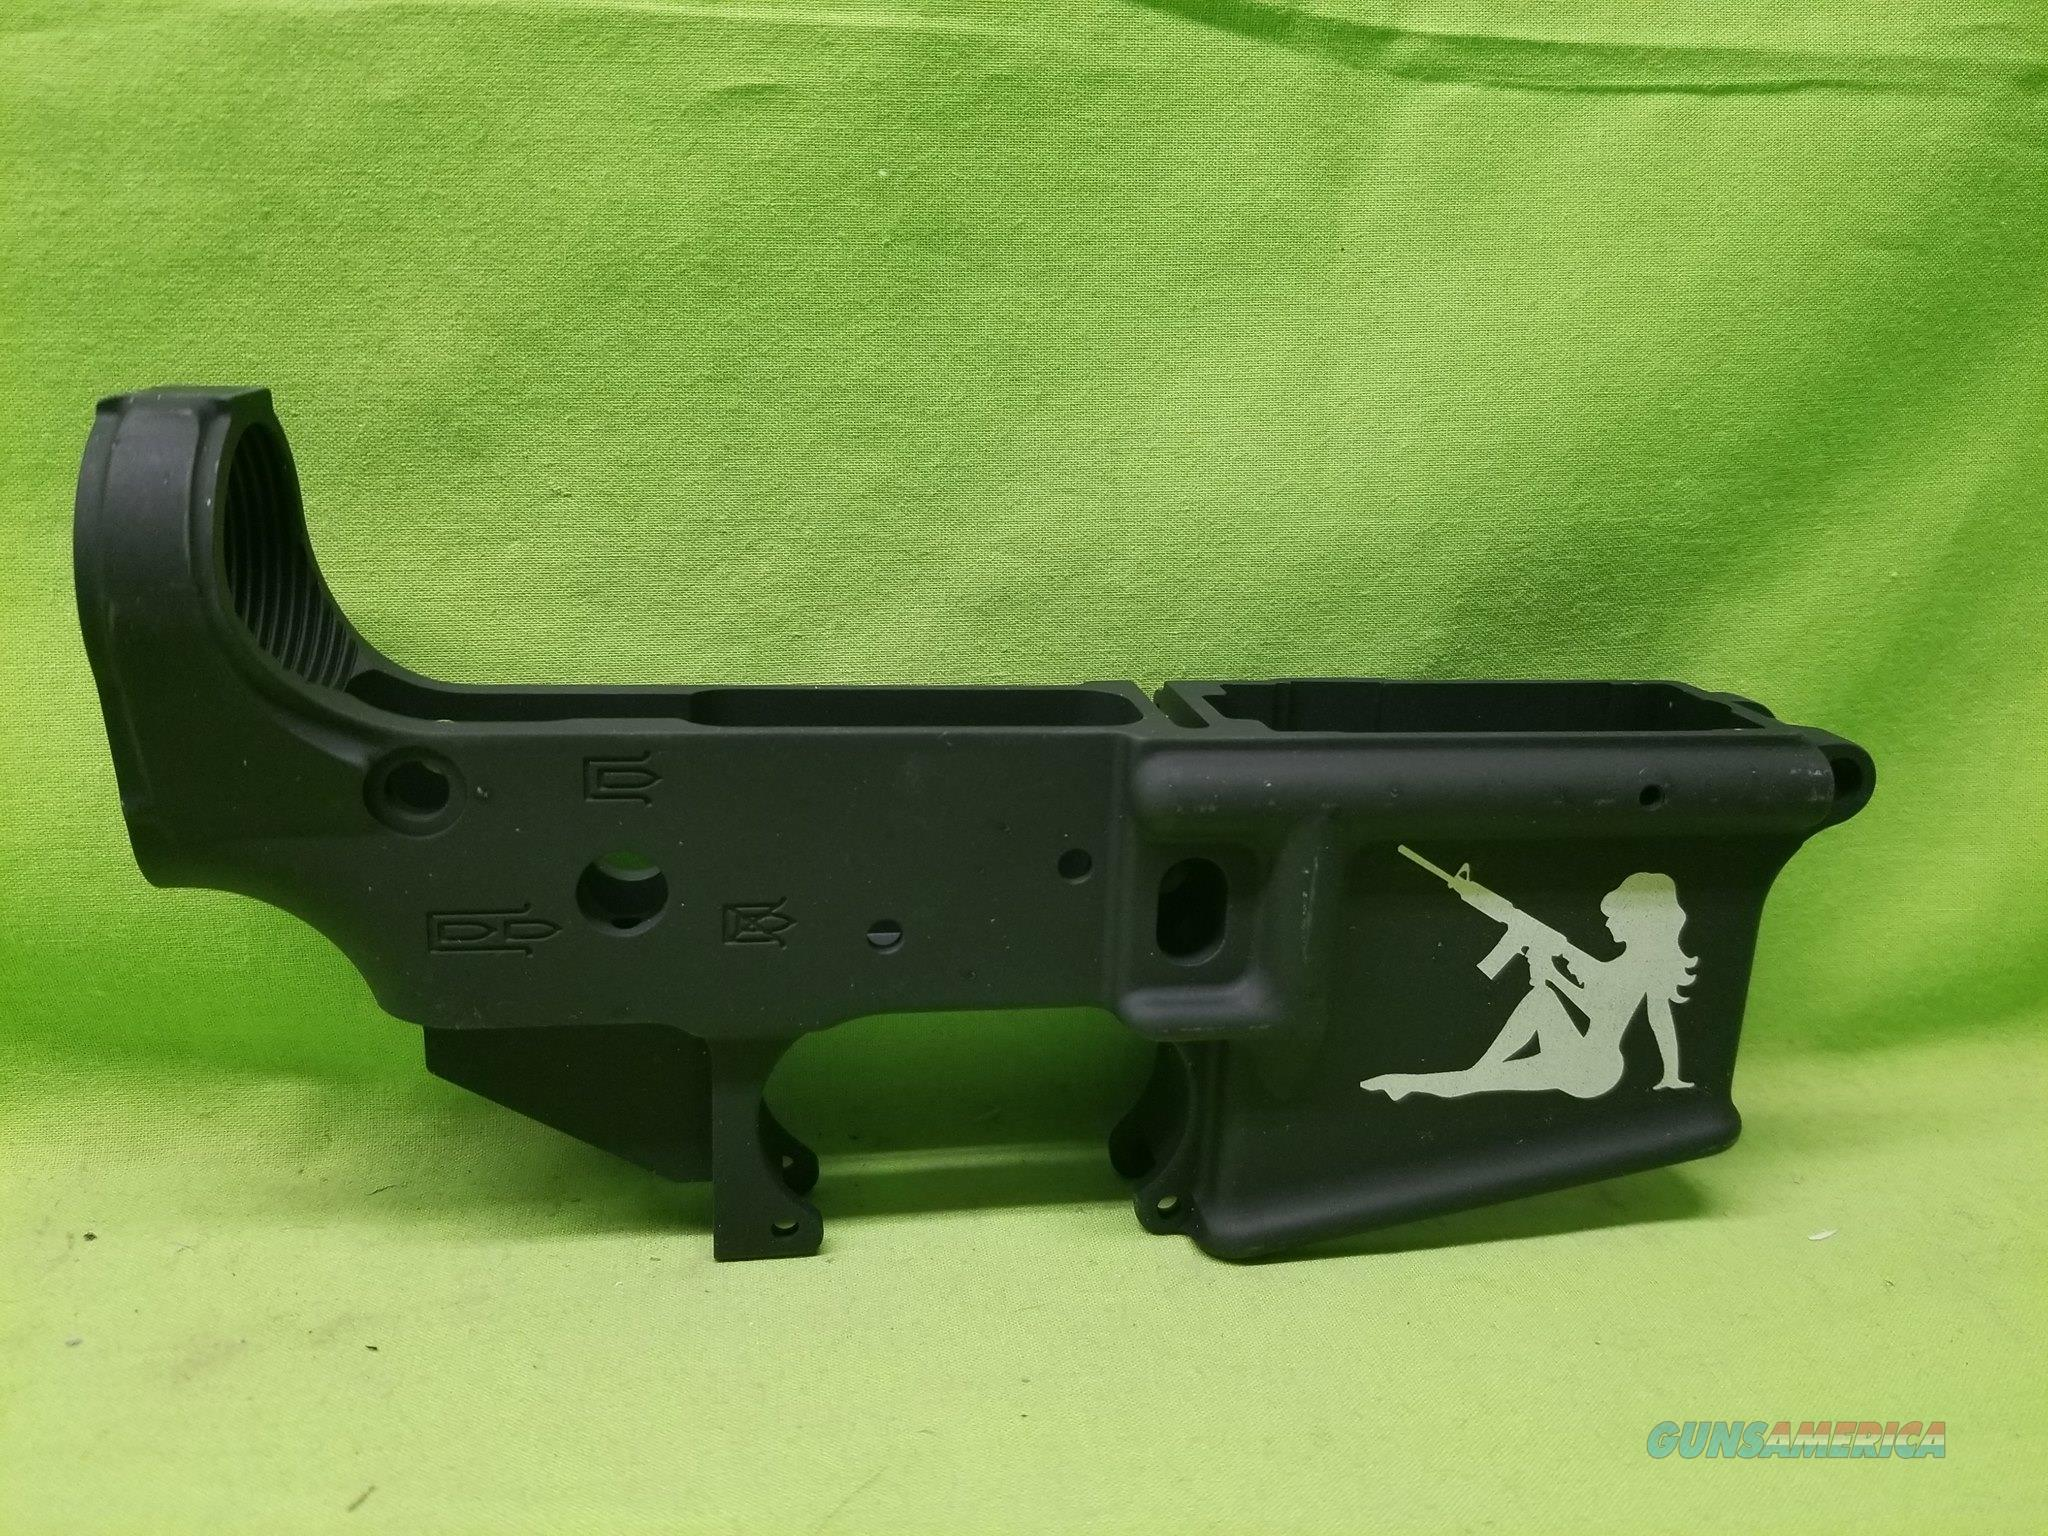 AA TACTICAL TAC-L WING STRIPPED LOWER GIRL WITH GUN  Guns > Rifles > AR-15 Rifles - Small Manufacturers > Lower Only